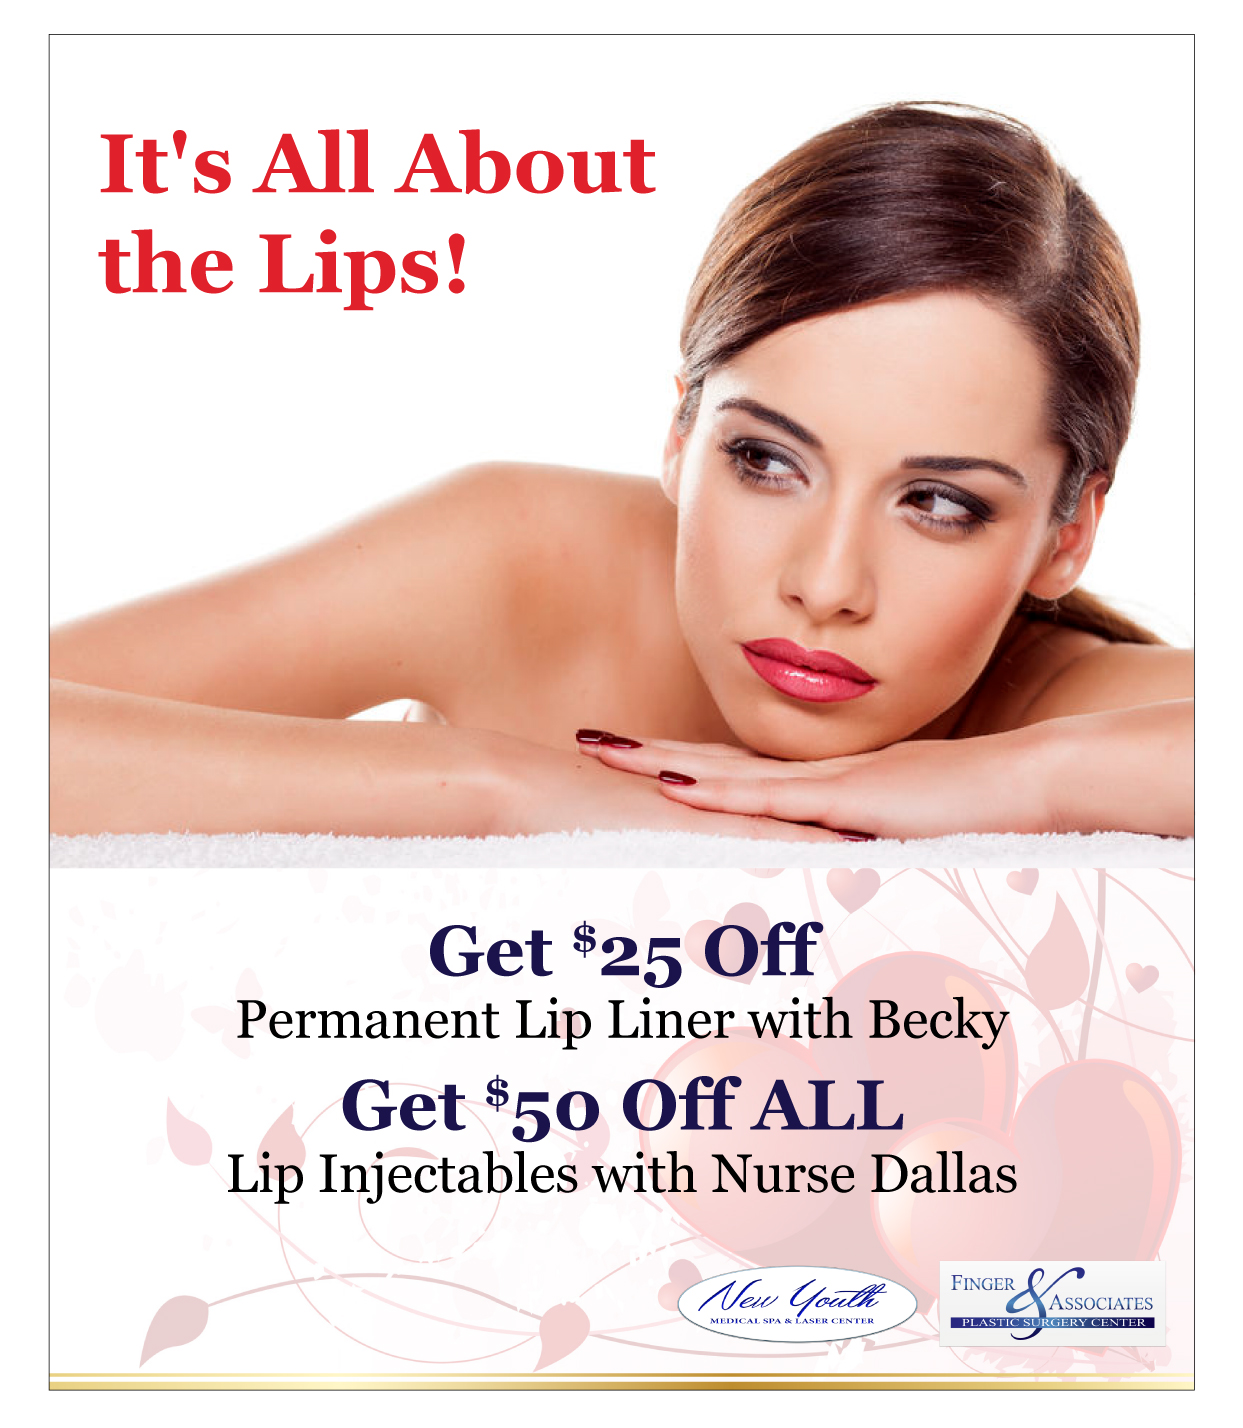 Finger and Associates and New Youth Medical Spa Specials on Permanent Lip Liner and Lip Injectables